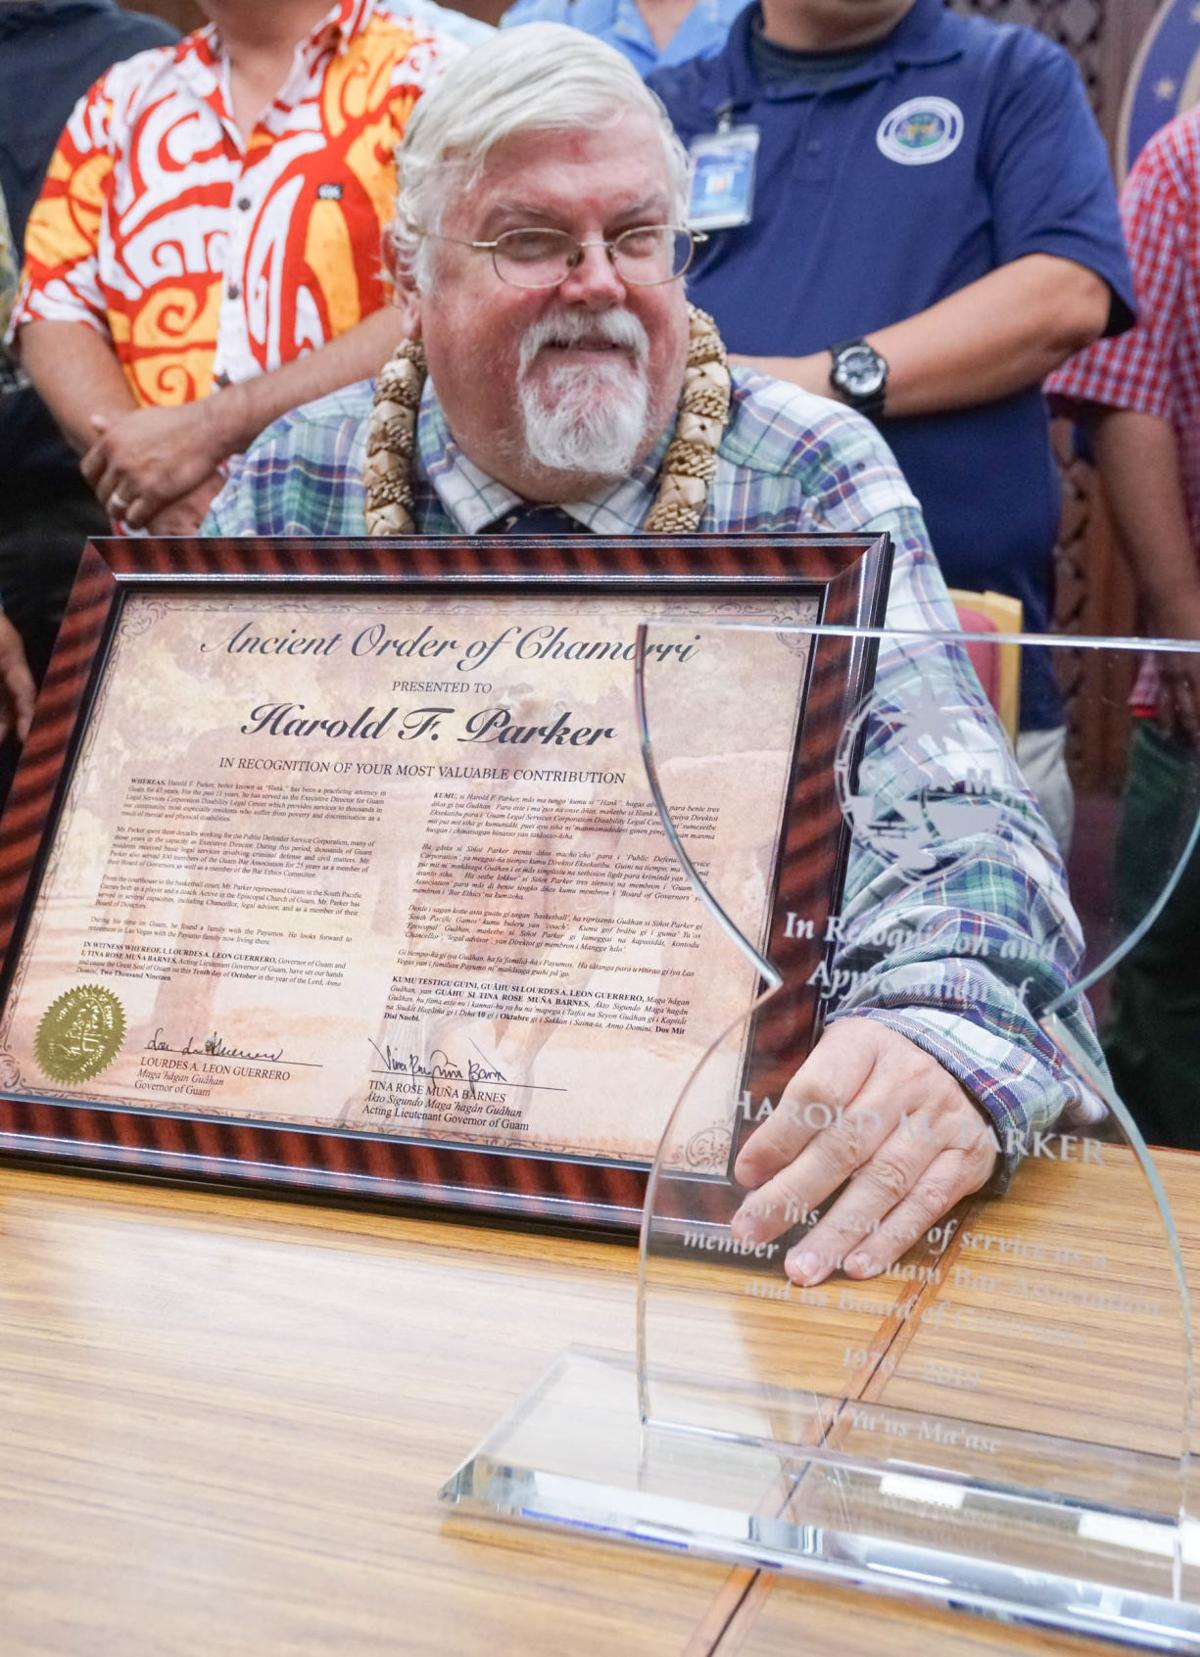 Guam attorney awarded Ancient Order of Chamorri